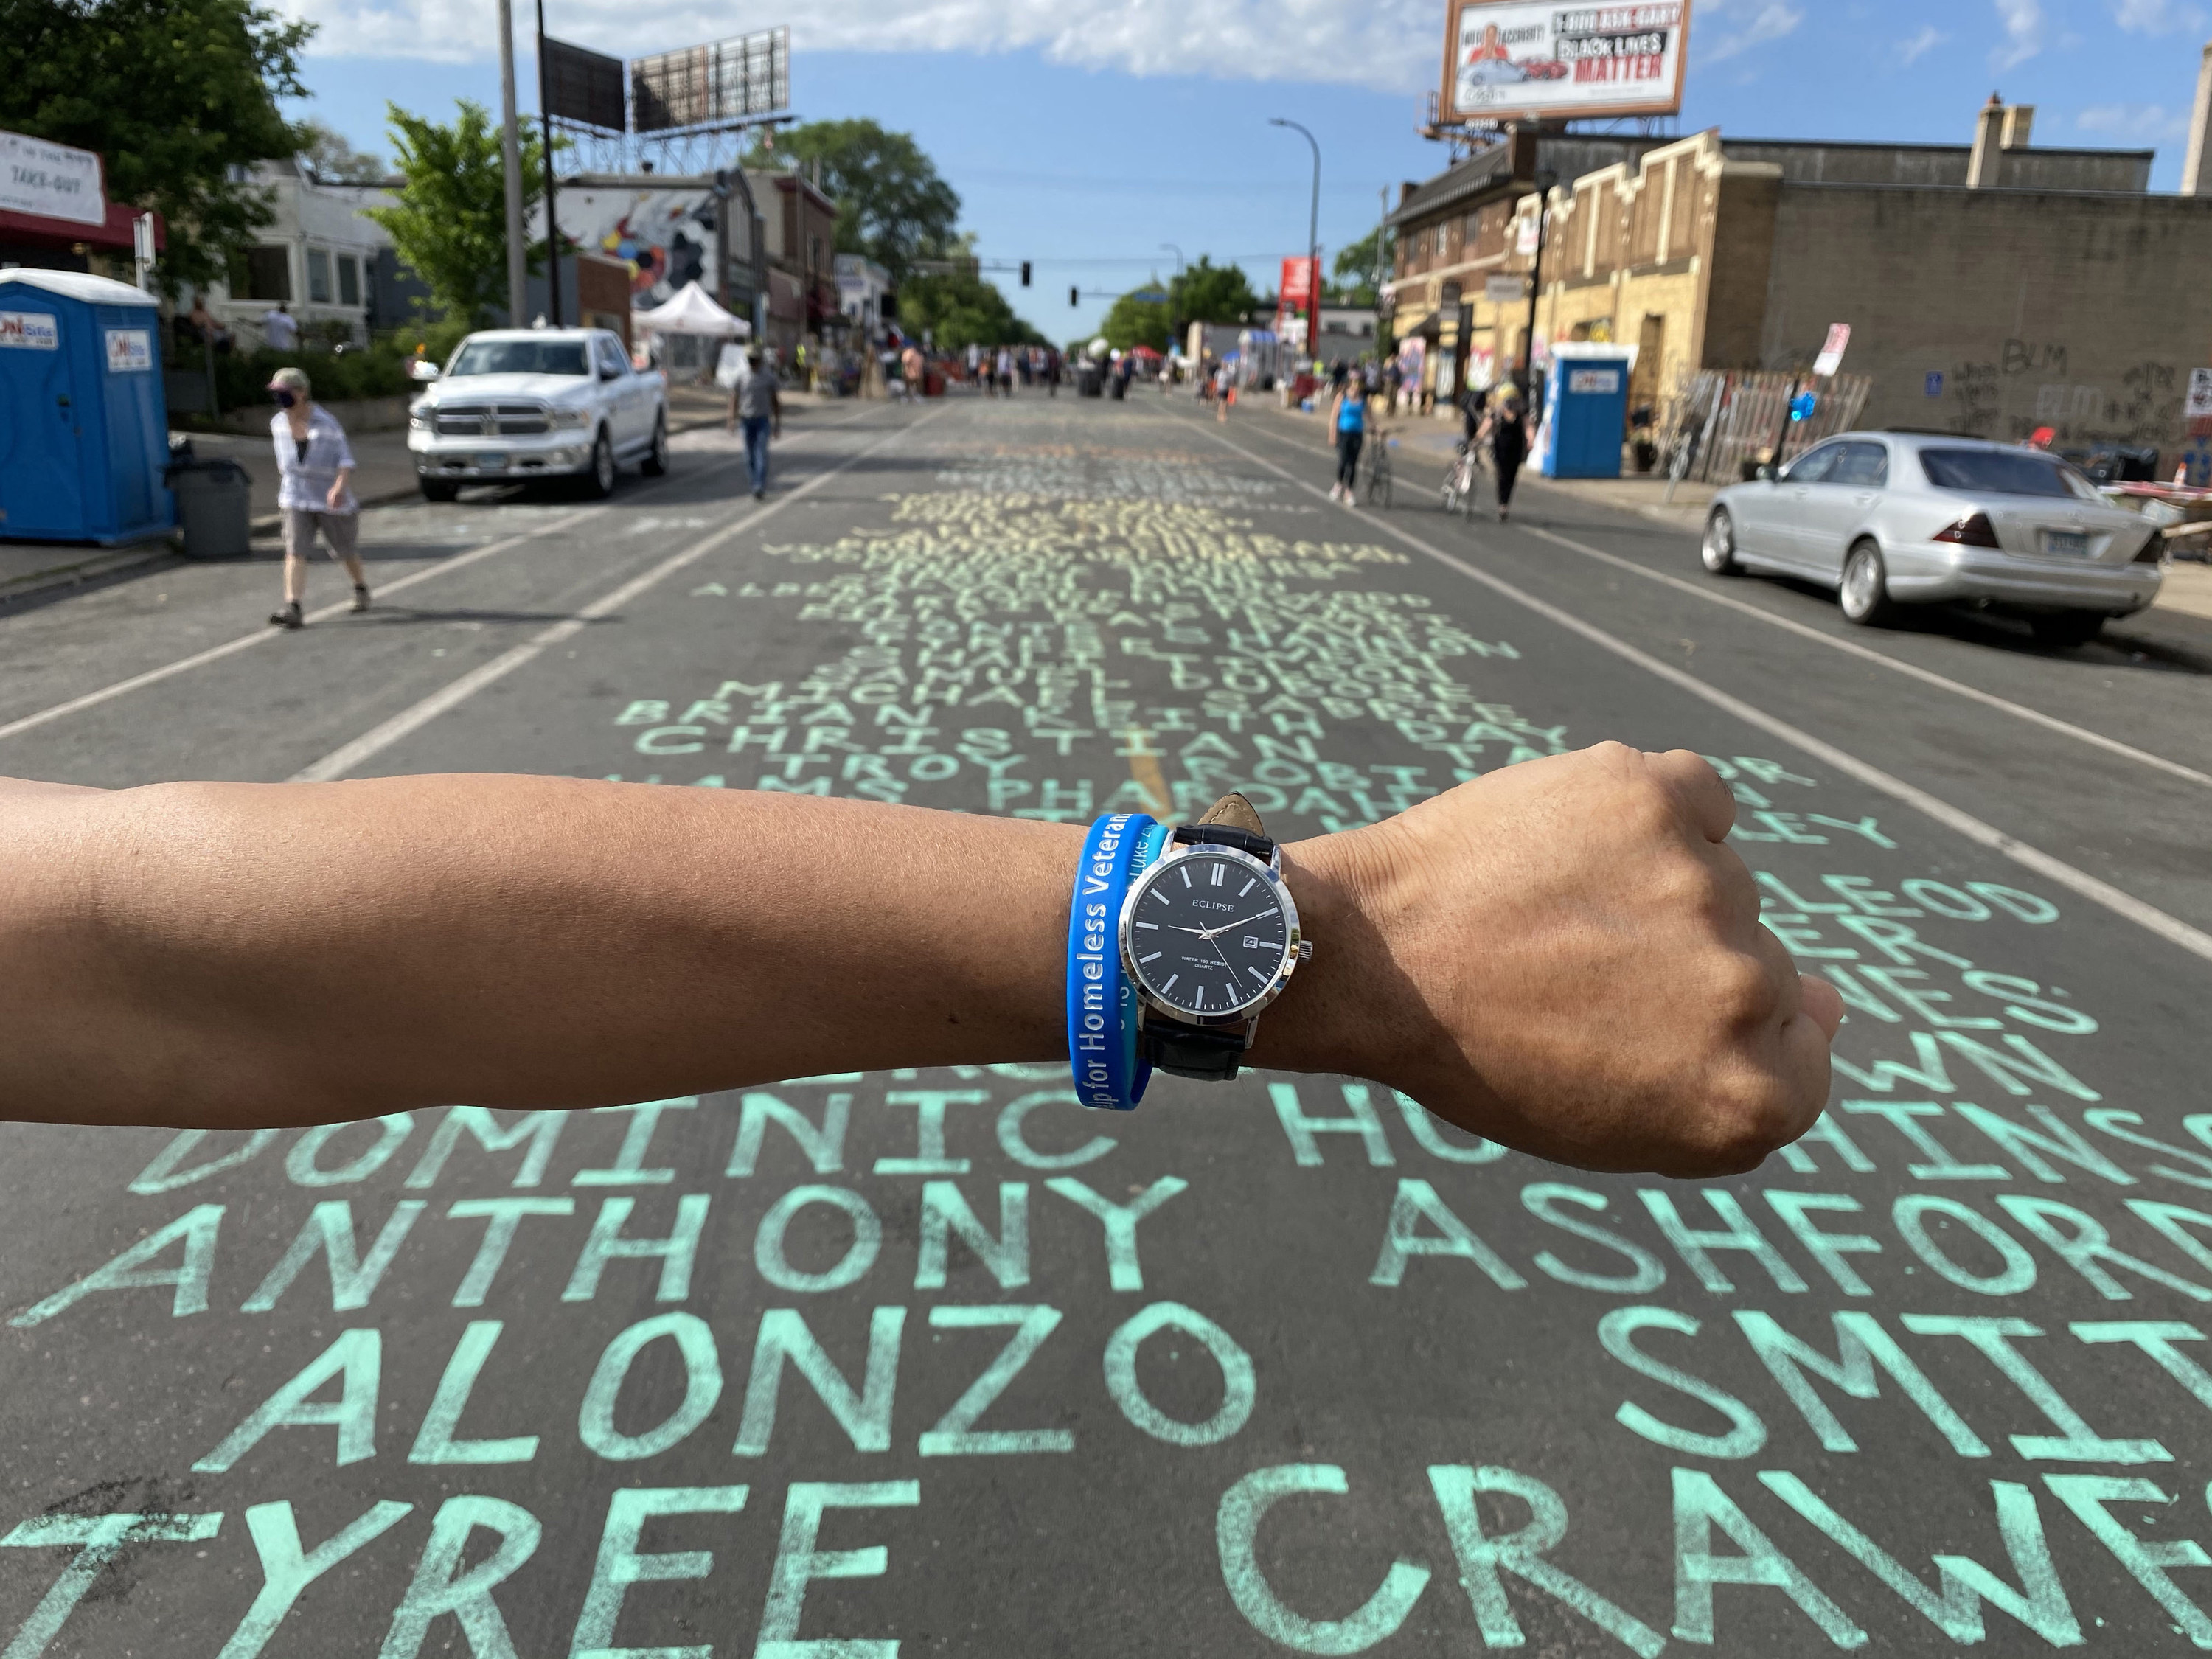 An arm wearing a watch in front of a list of names written in chalk on the street